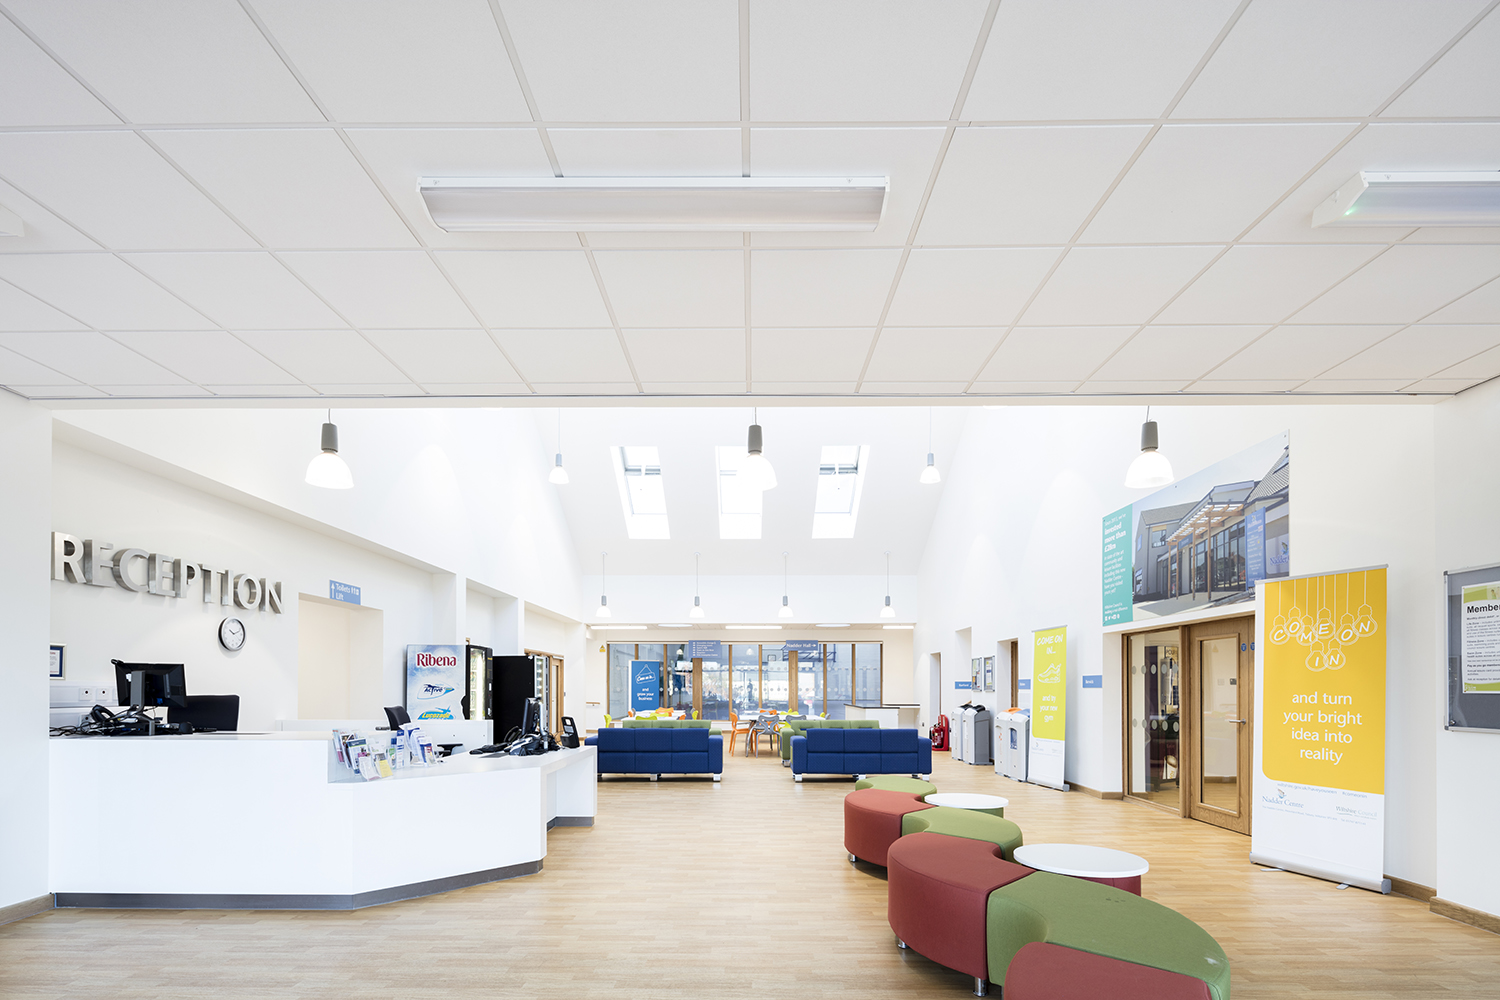 How ceilings are aiding learning for today's youth